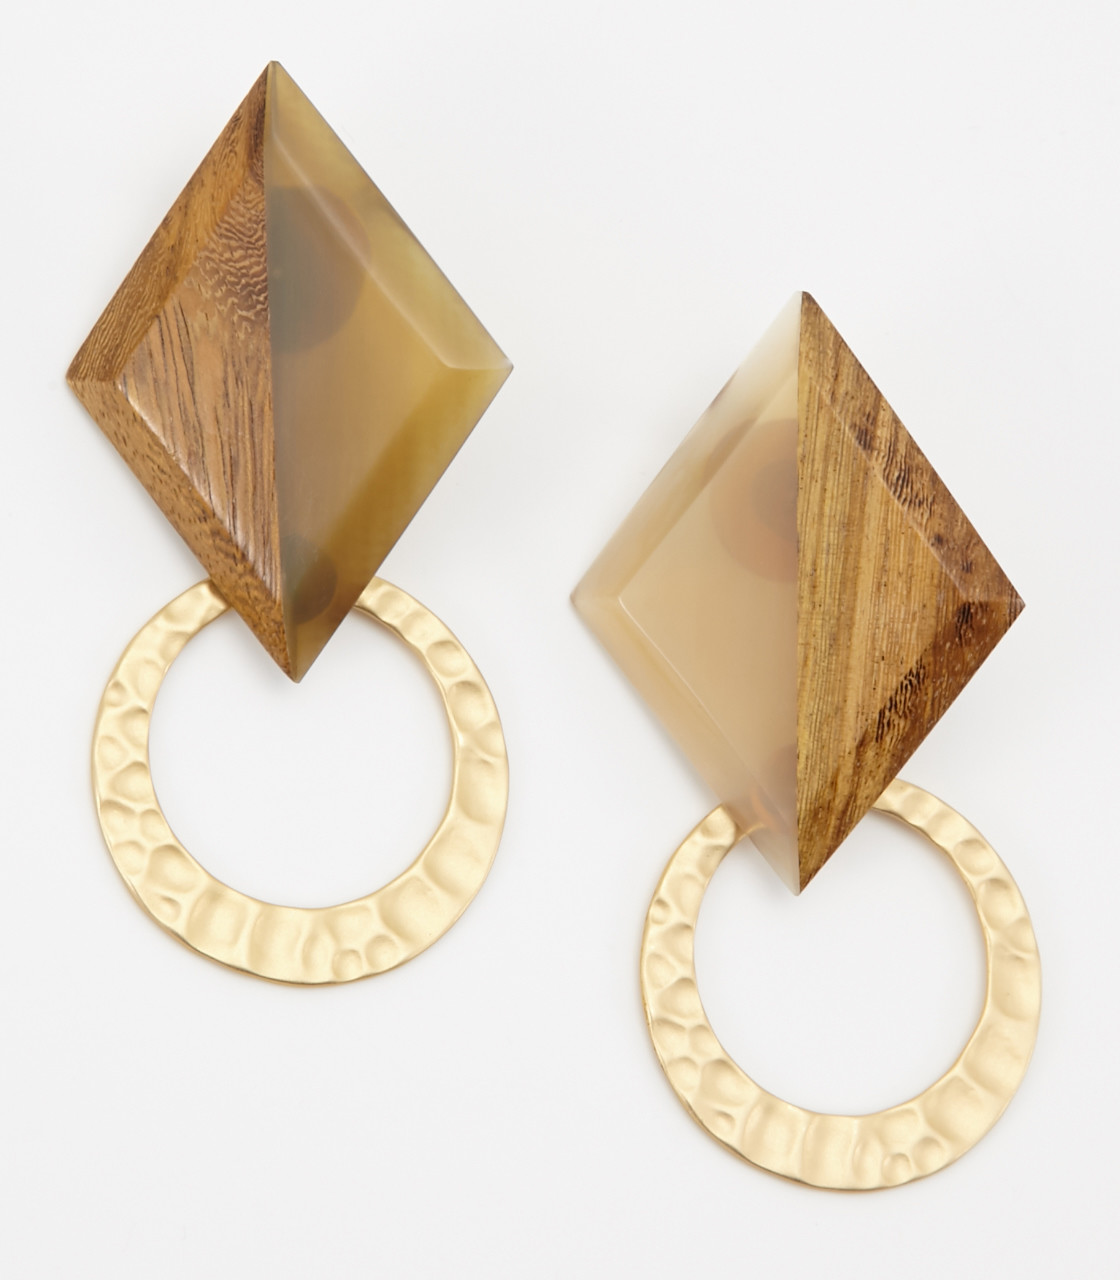 Square wood earring